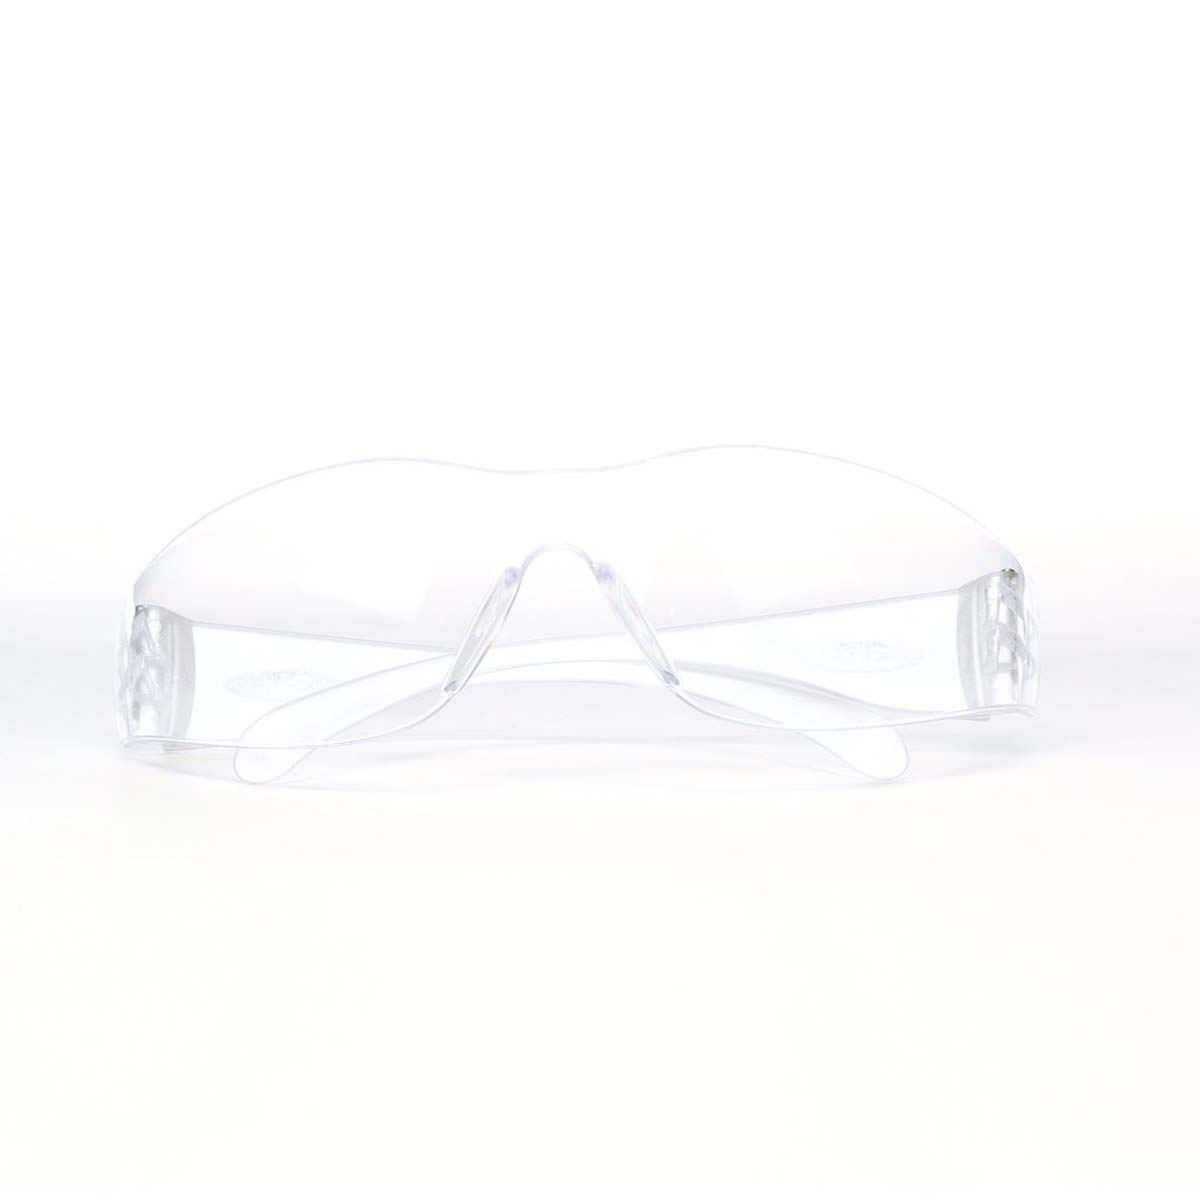 3M Virtua Protective Eyewear 11228-00000-100 Clear Uncoated Lens, Clear Temple